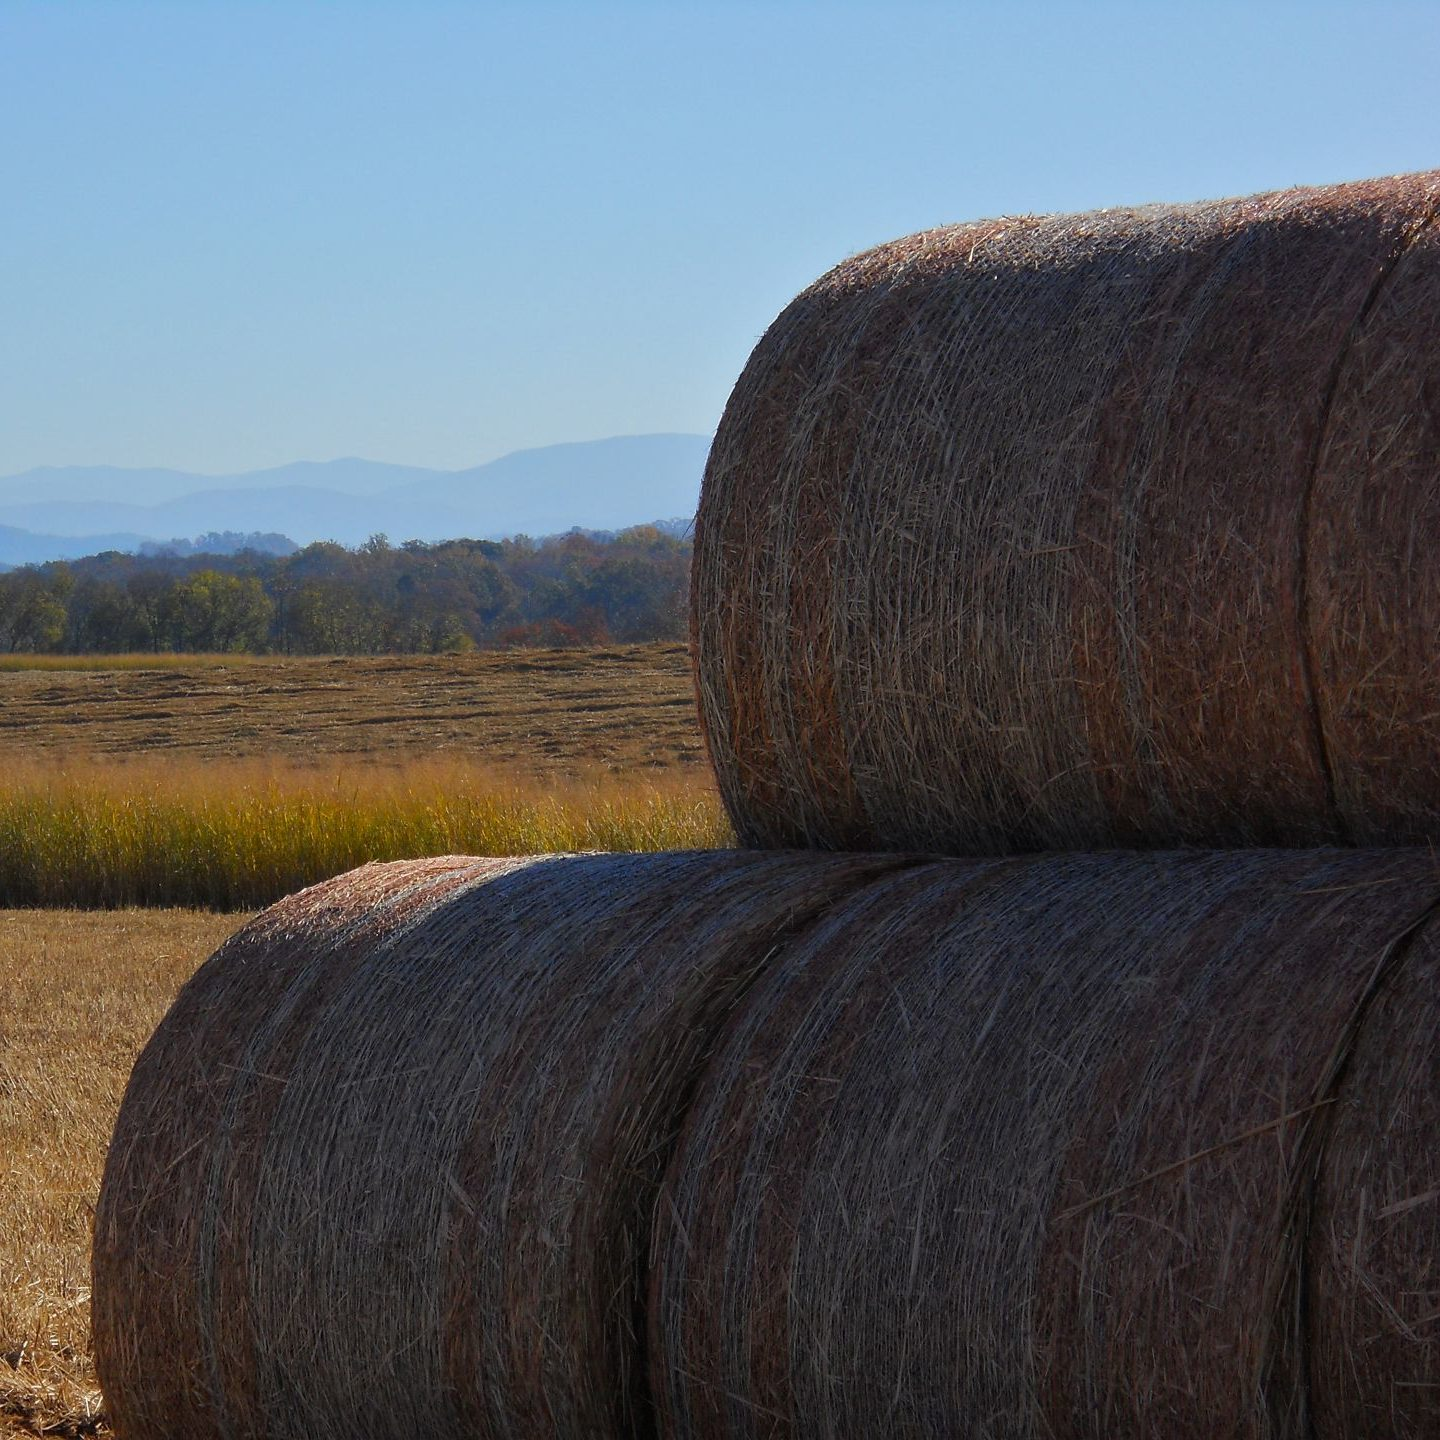 switchgrass bales in foreground in a field with mountains in background